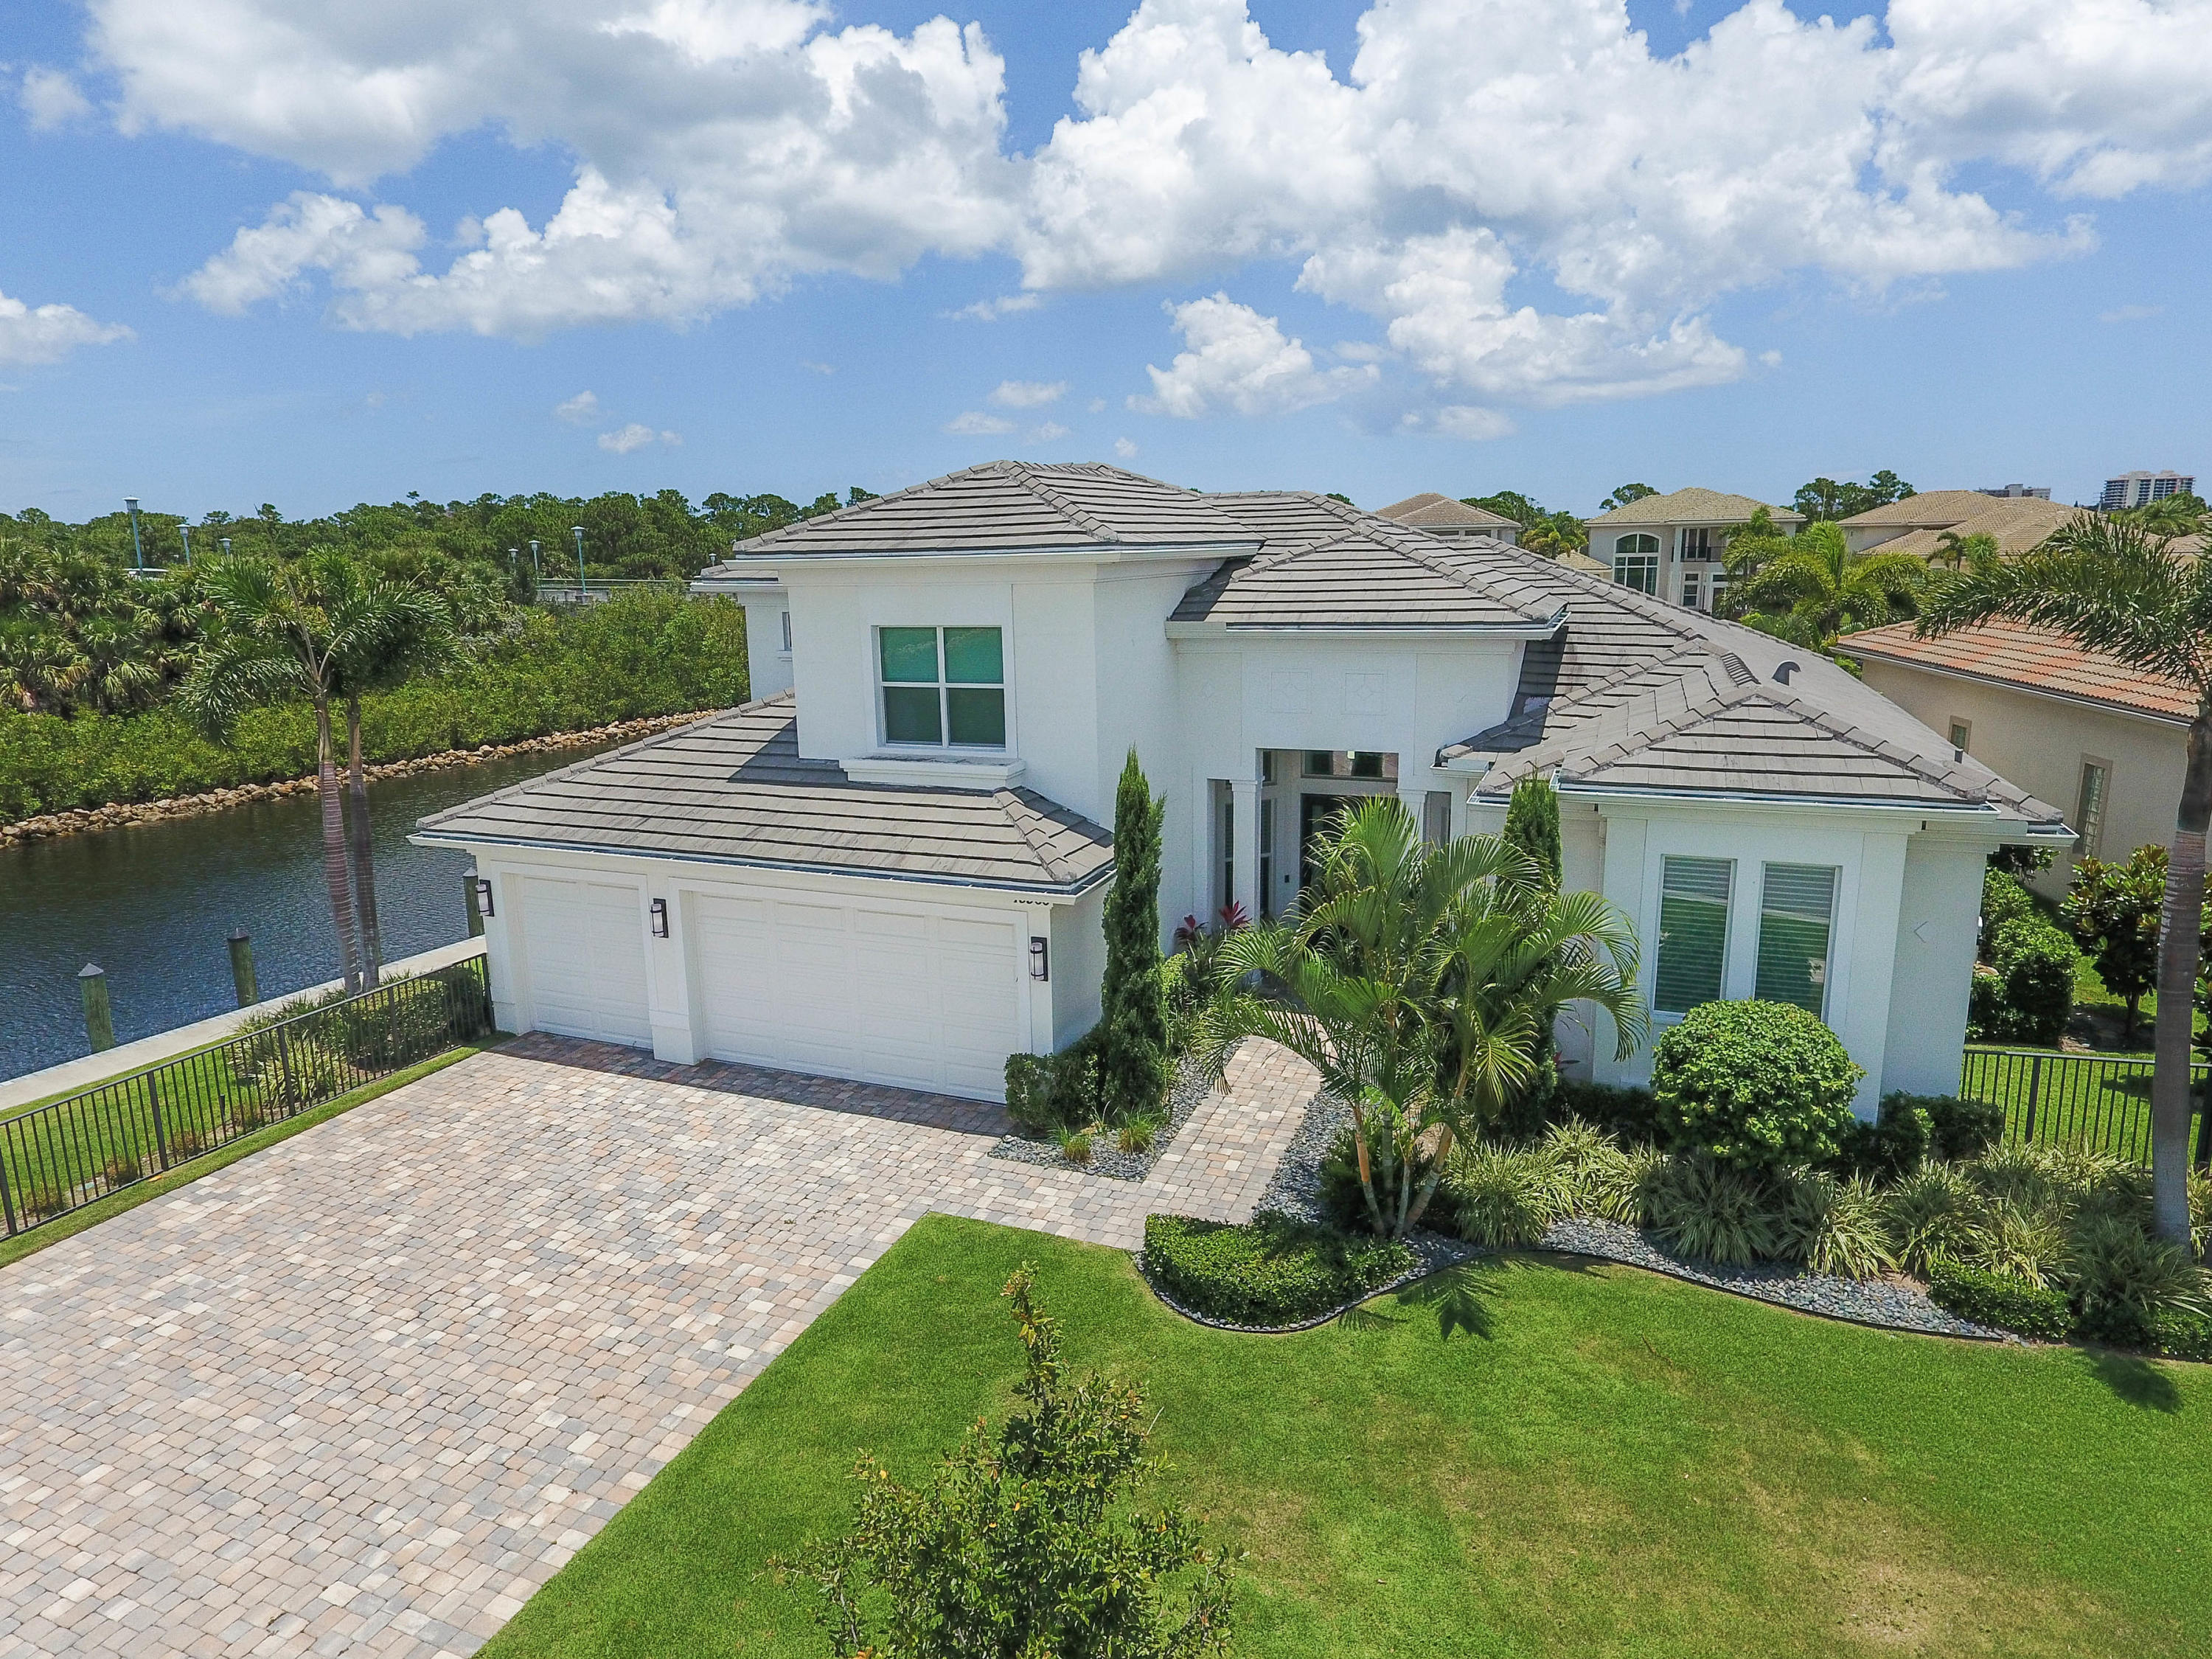 New Home for sale at 13966 Chester Bay Lane in North Palm Beach